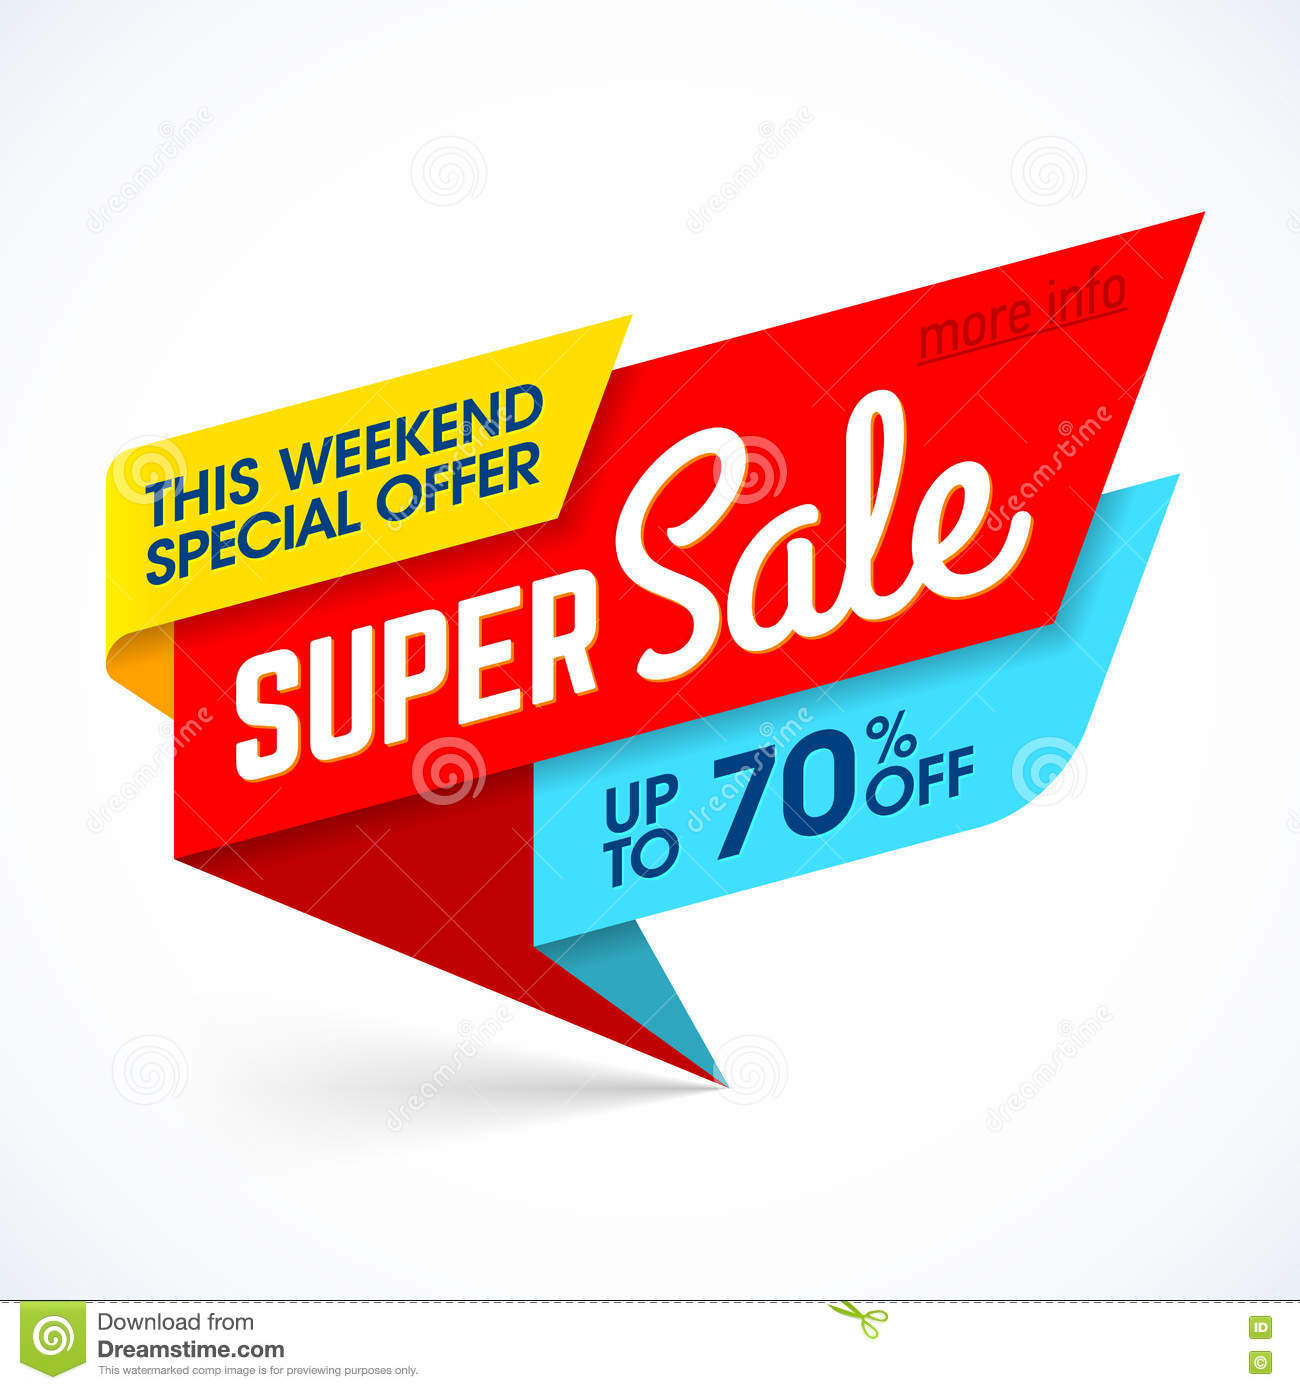 Weekend Discount: Super Sale, This Weekend Special Offer Banner Stock Vector